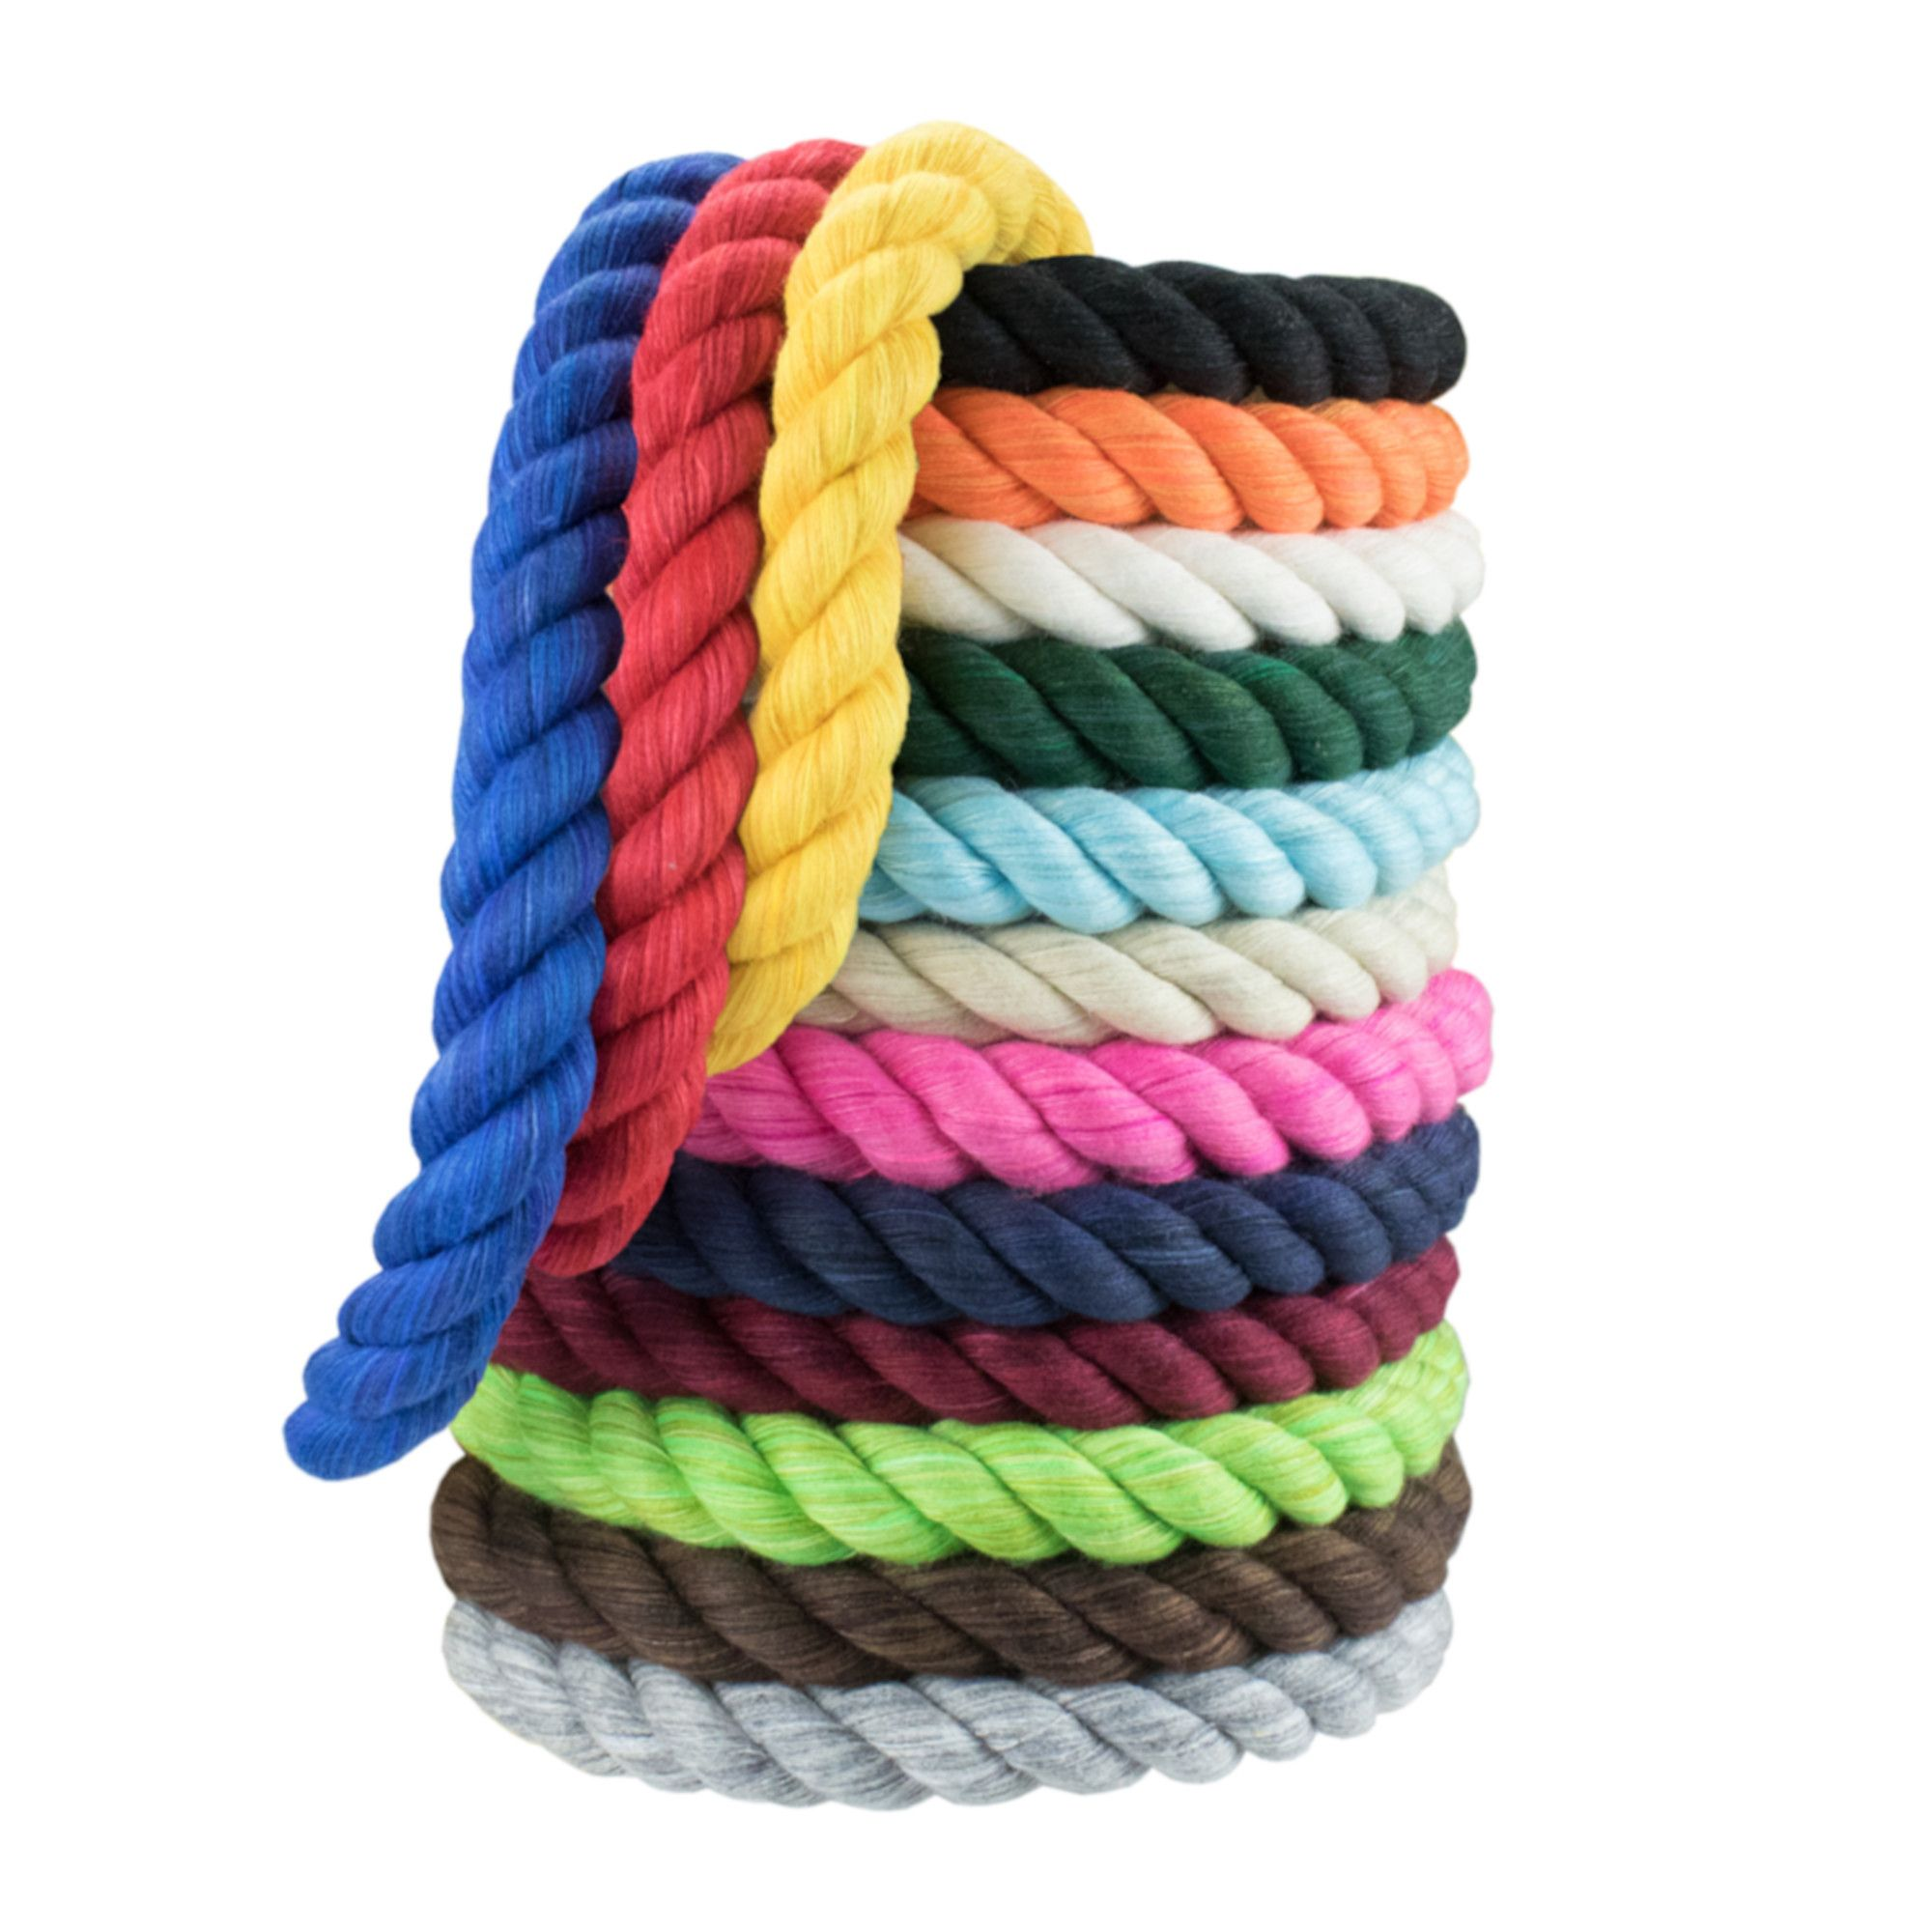 Free 2 Day Shipping Buy Wcp Twisted Cotton Rope 3 Strand Natural Artisan Cord 1 4 Inch 1 2 Inch Super Soft By The Foot I In 2020 Cotton Rope Paracord Planet Rope Rug